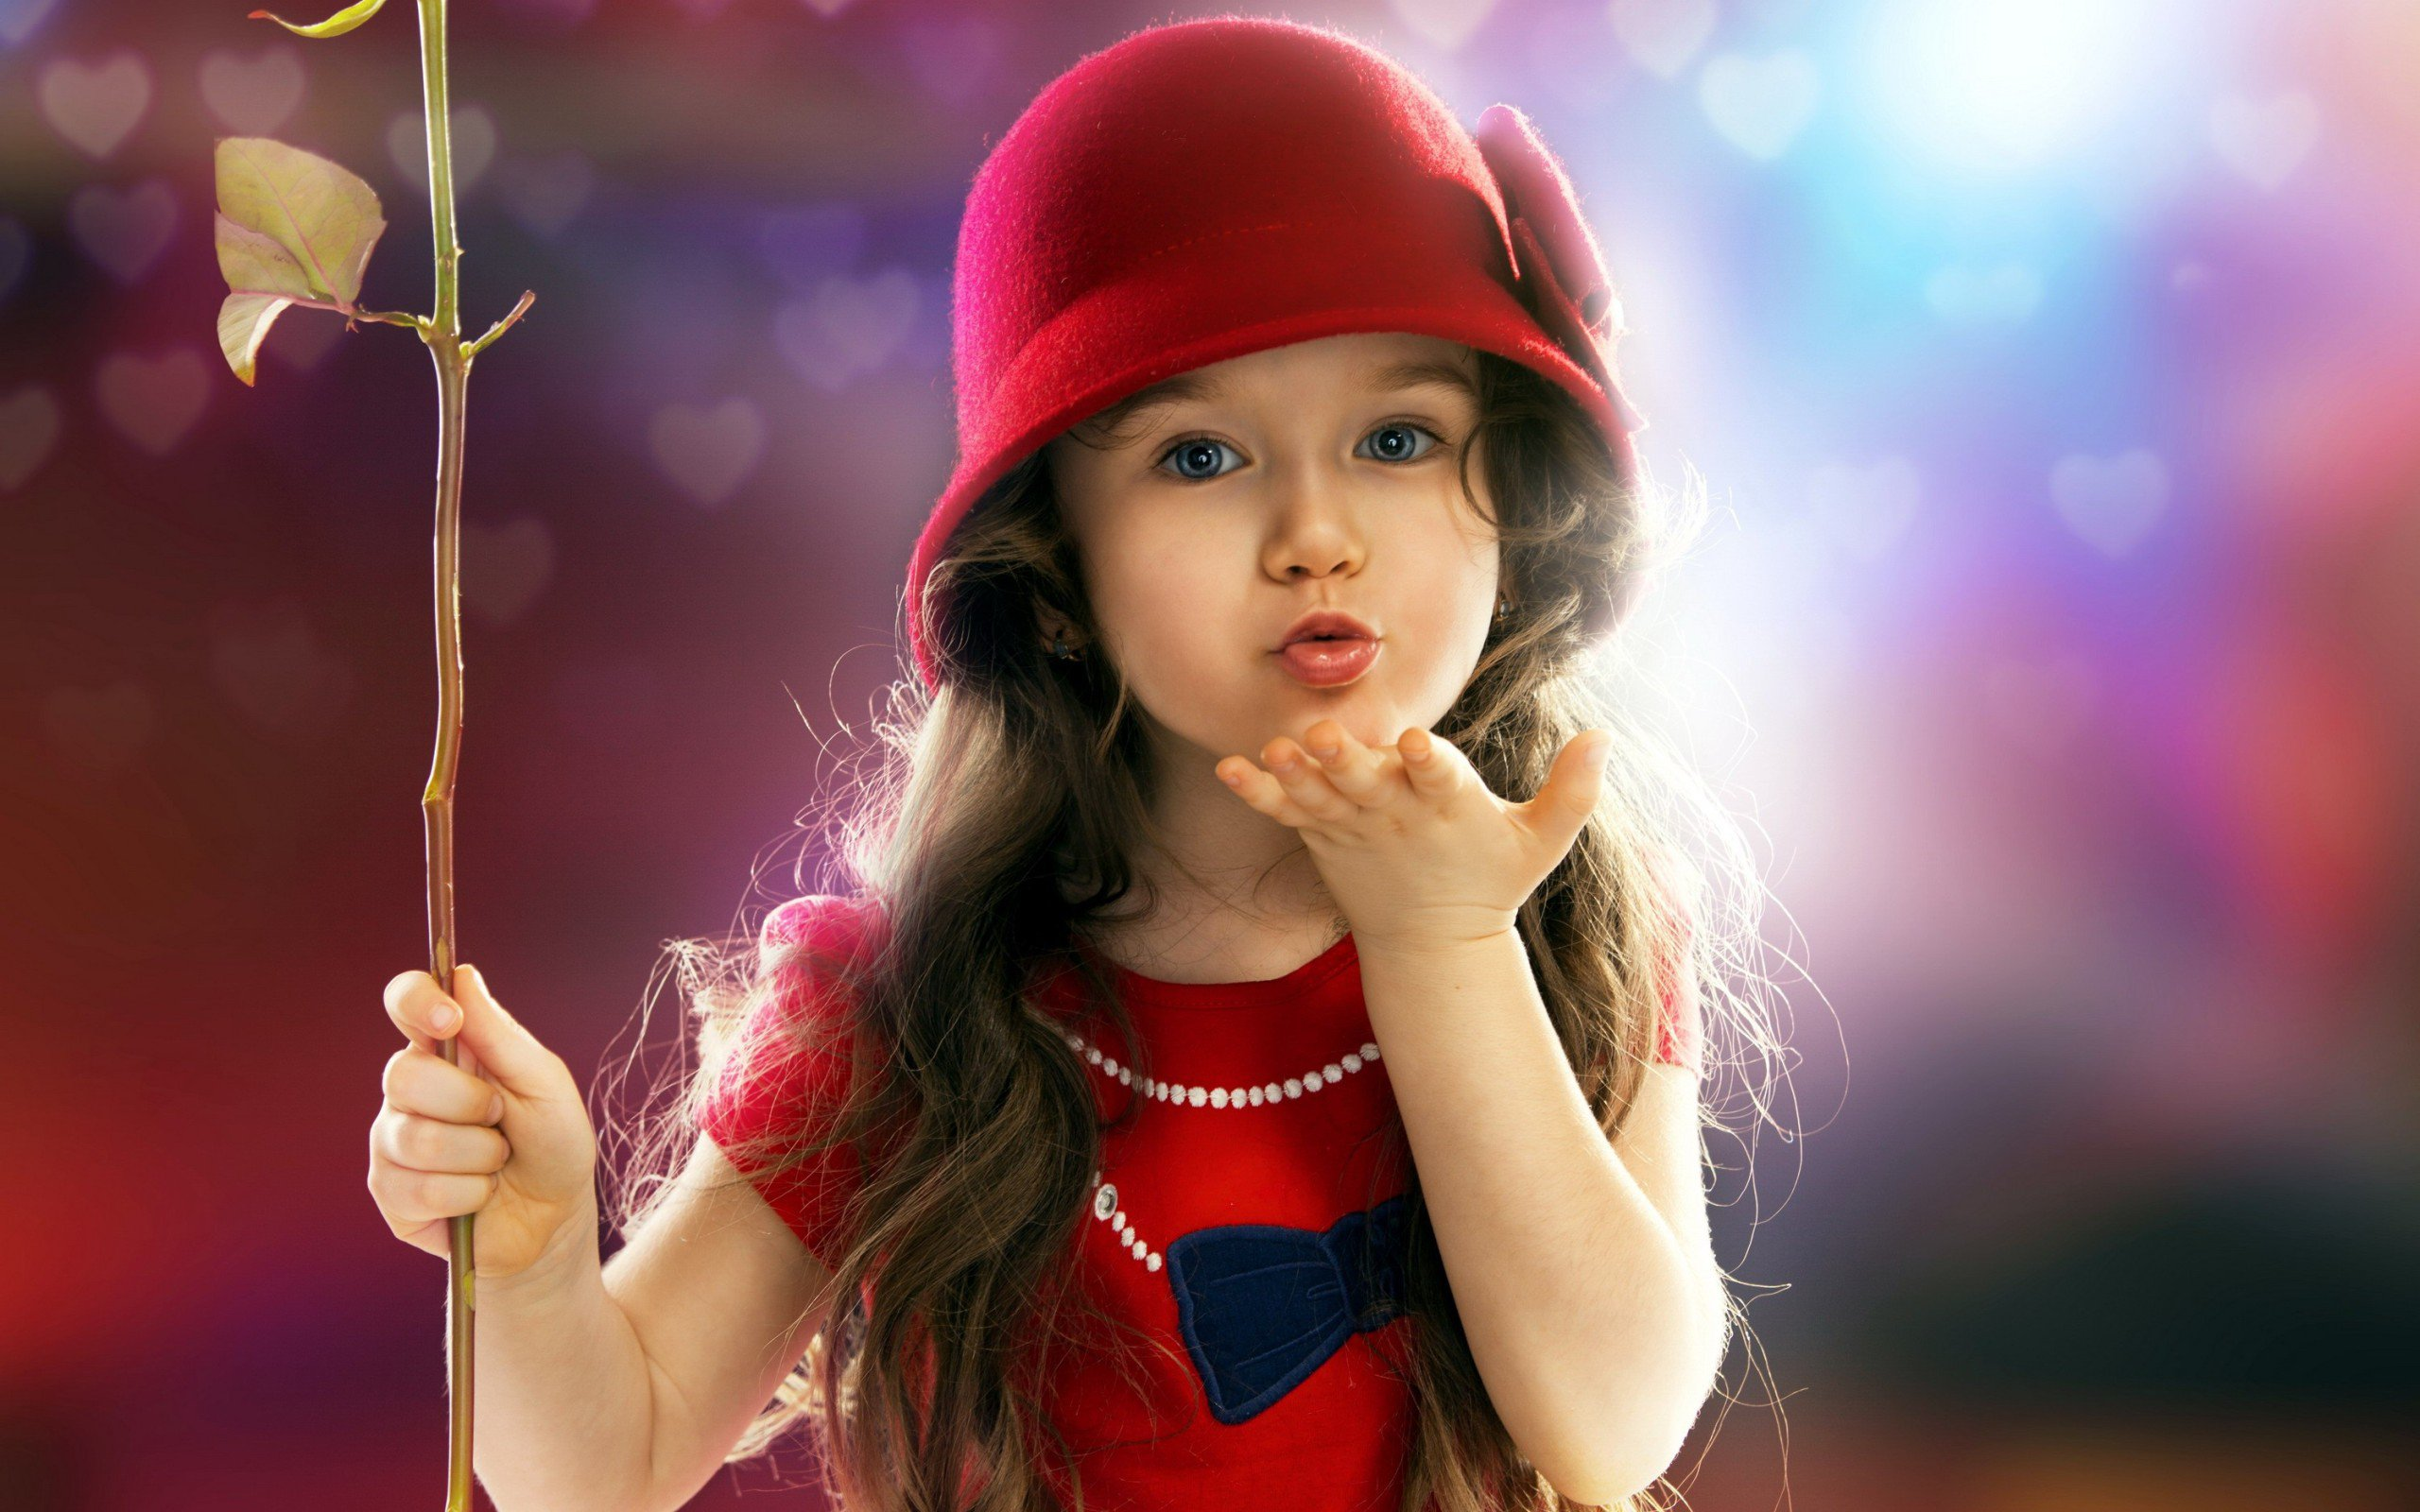 Cute Wallpapers For Profile Pics